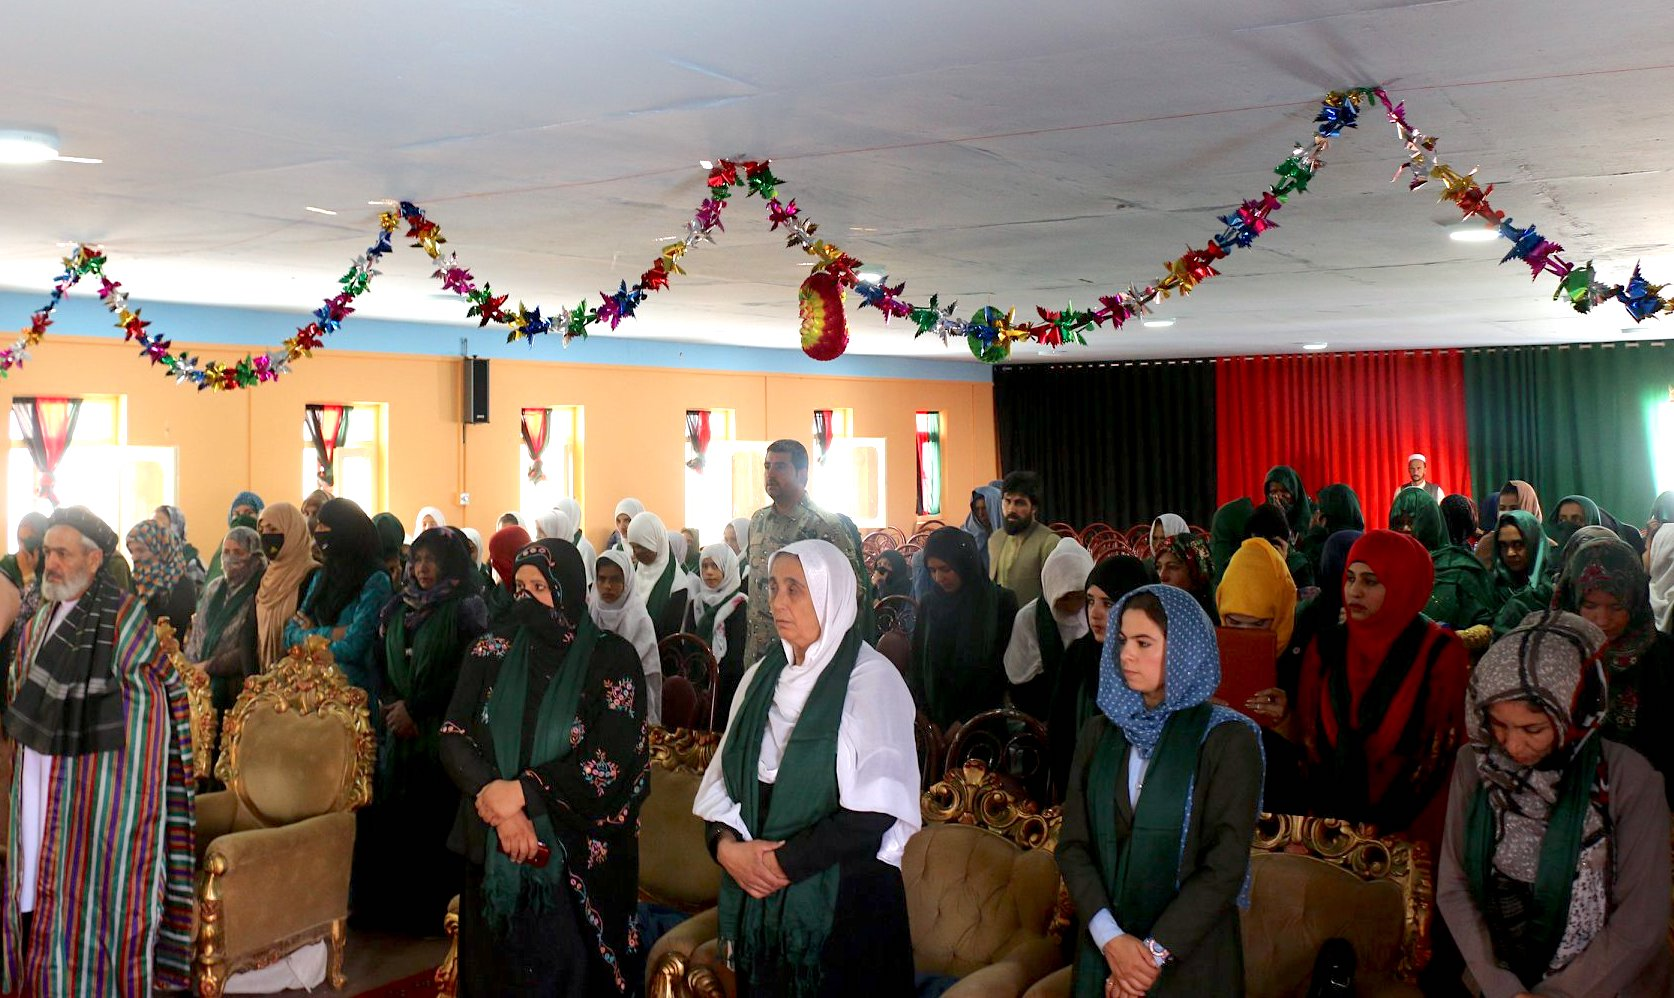 Unshackled from Taliban rule, Logar women seek bigger role in government